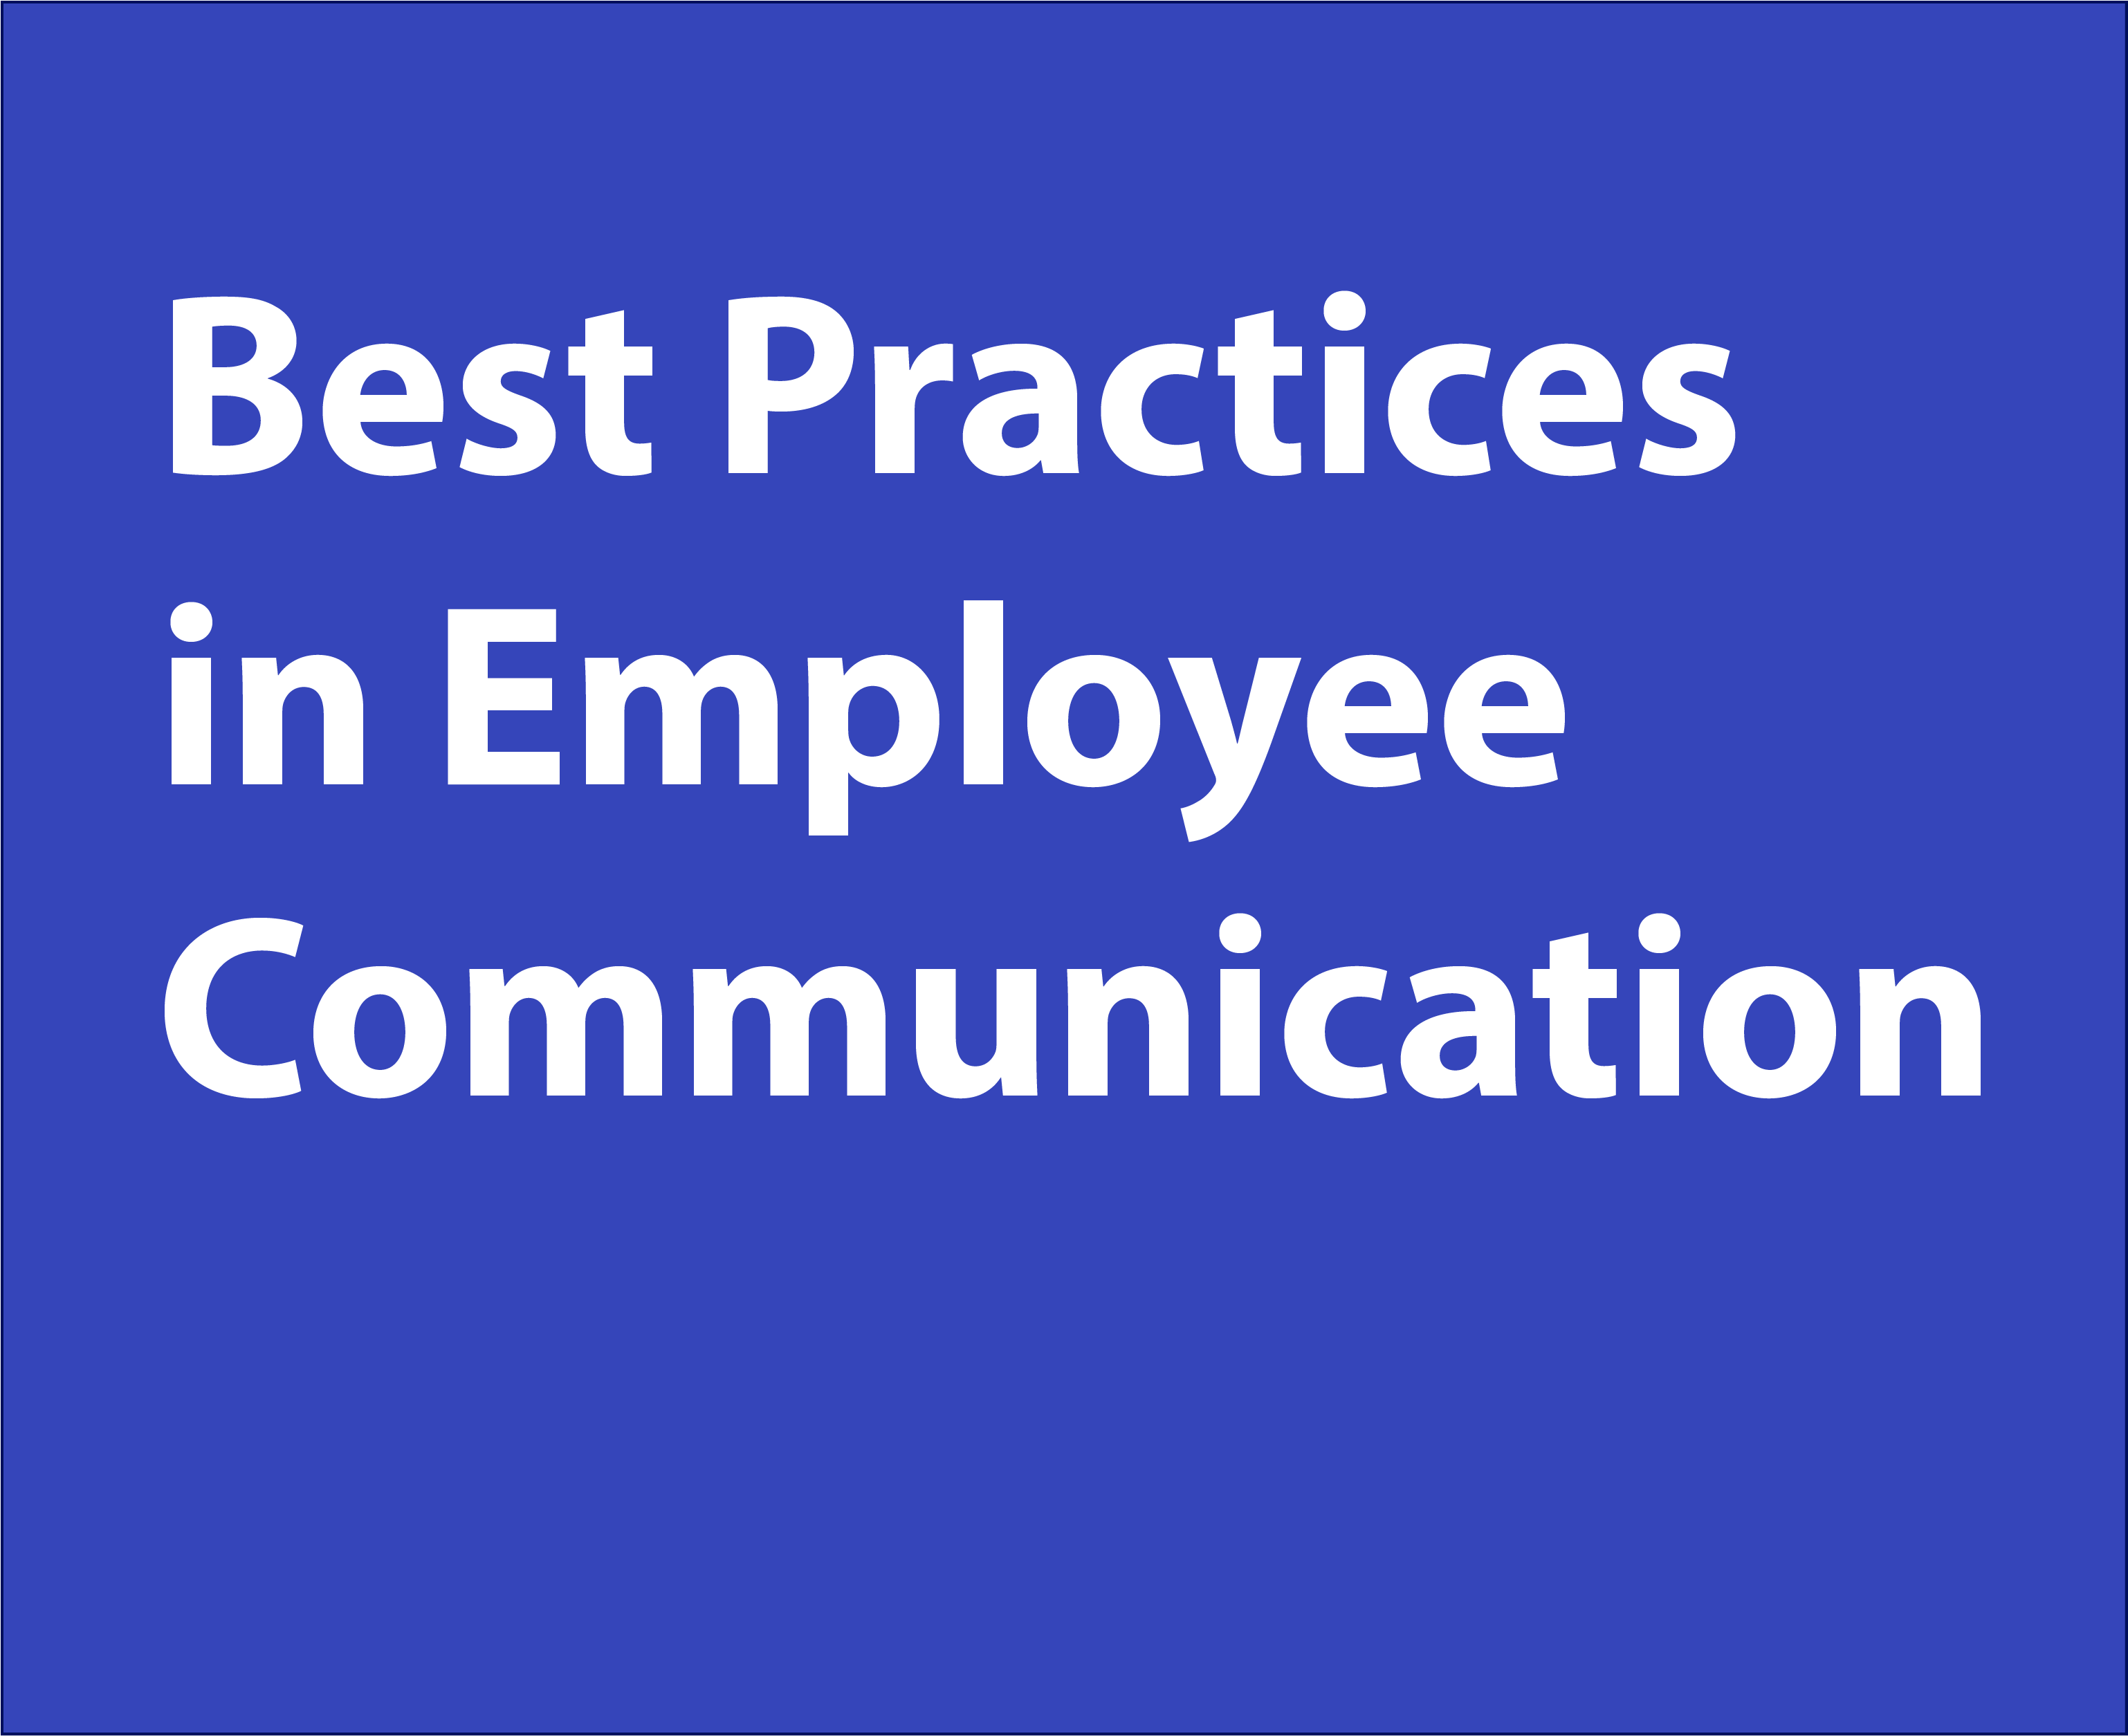 Best Practices in Employee Communication